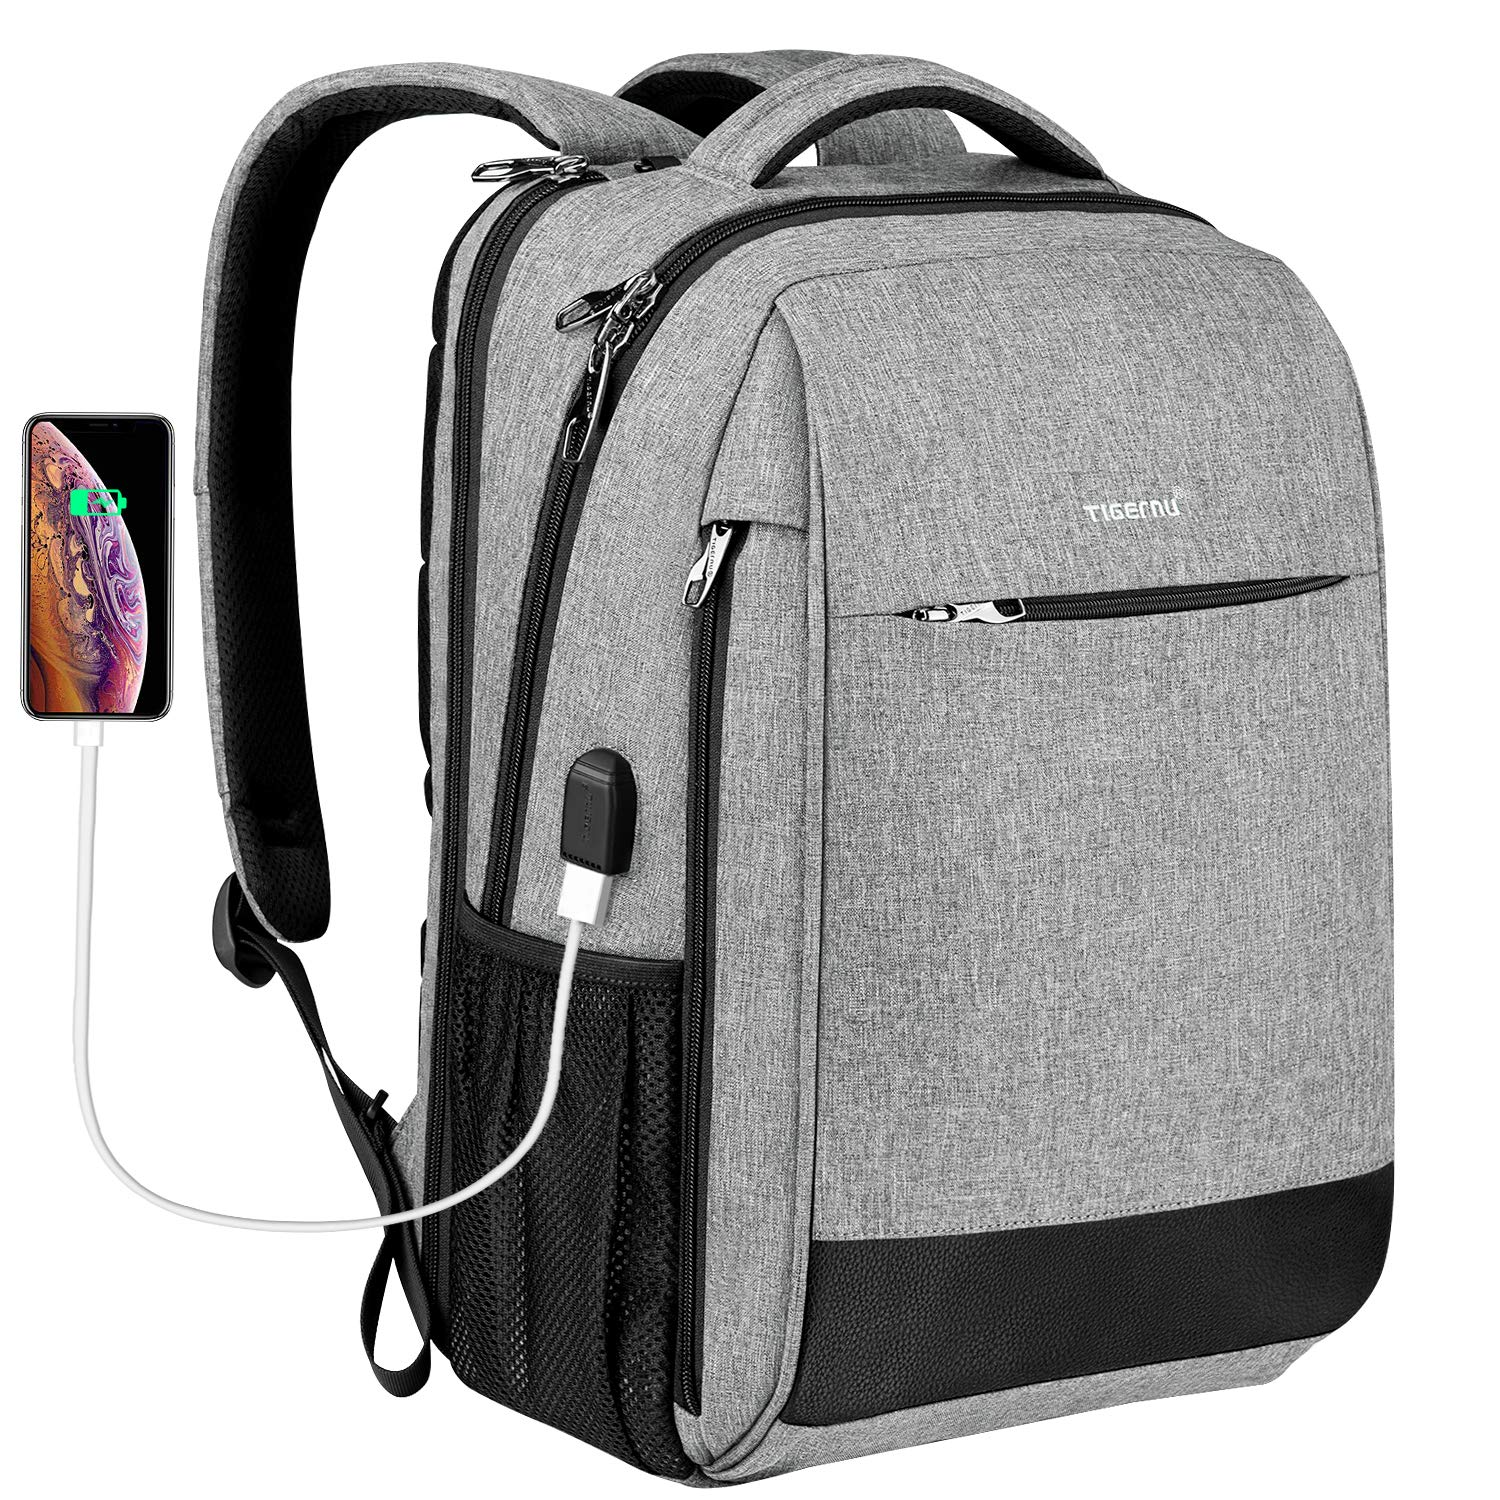 Laptop Backpack,Tigernu Business Travel Anti Theft Slim Durable Laptops (Max 15.6 Inch) Backpack with USB Charging Port,Water Resistant College School Computer Bag for Women & Men